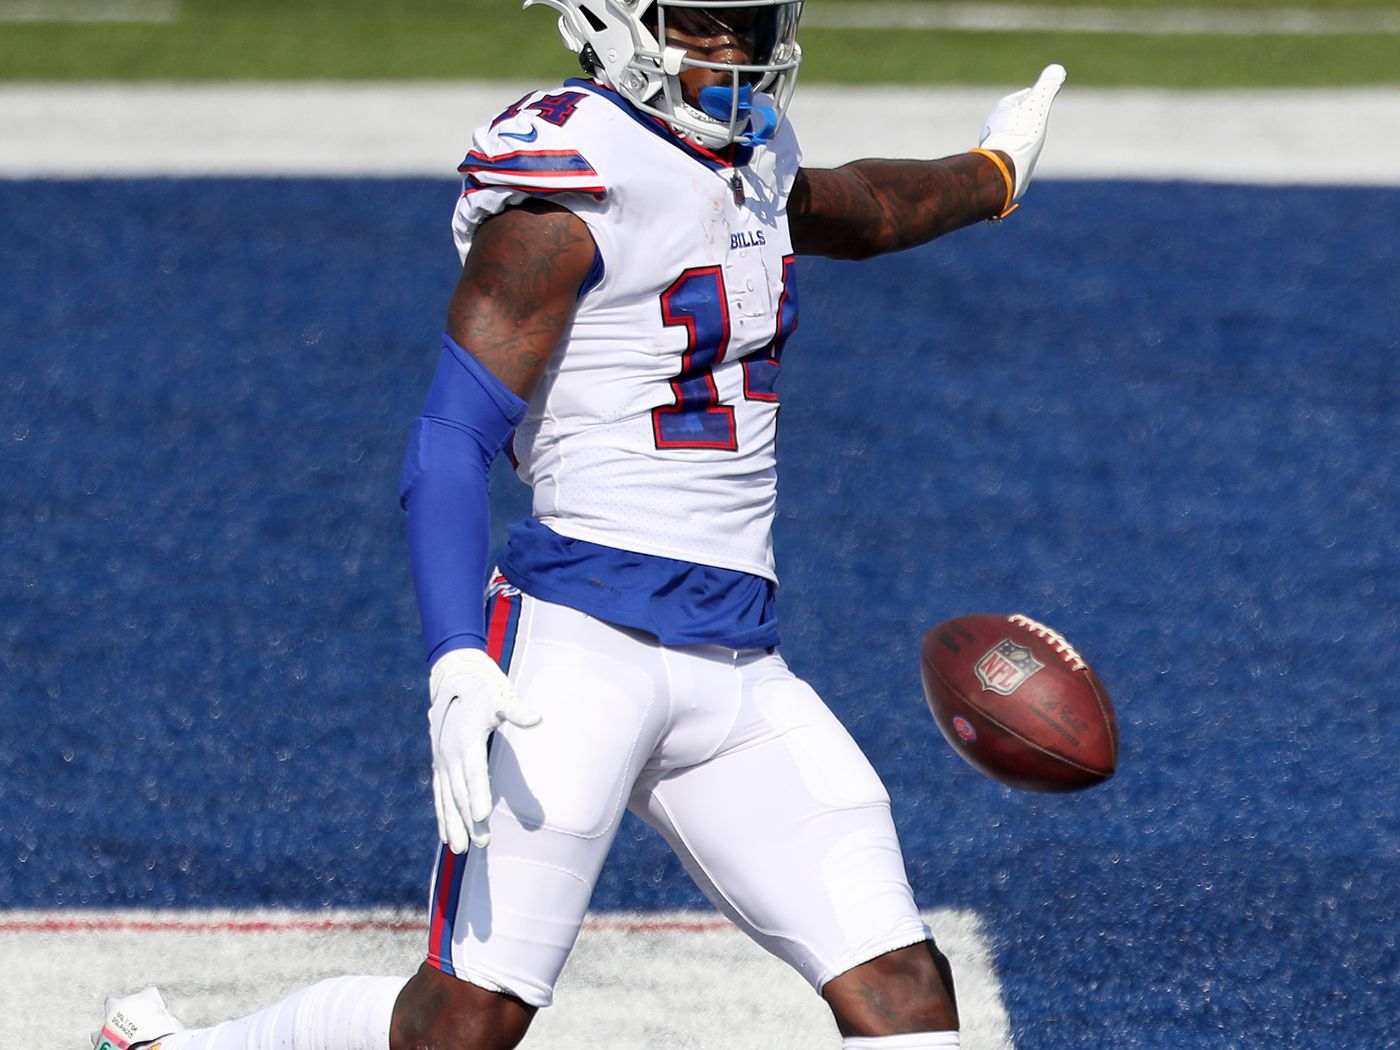 Bills Vs Titans Picks Best Bets To Make For The Week 5 Tuesday Night Football Matchup Draftkings Nation